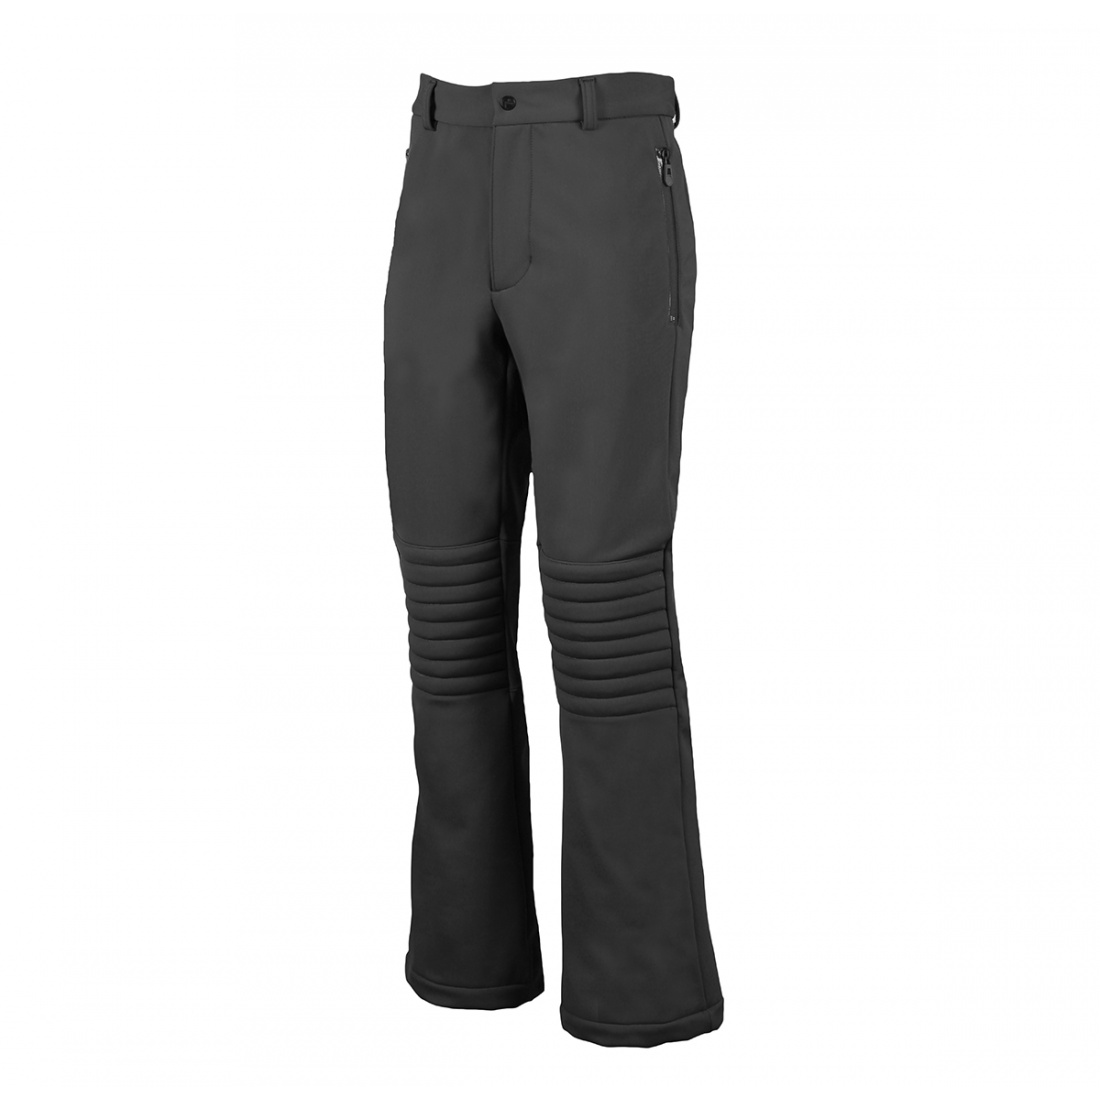 pantalon de ski homme alpes fusalp freestyle sport. Black Bedroom Furniture Sets. Home Design Ideas